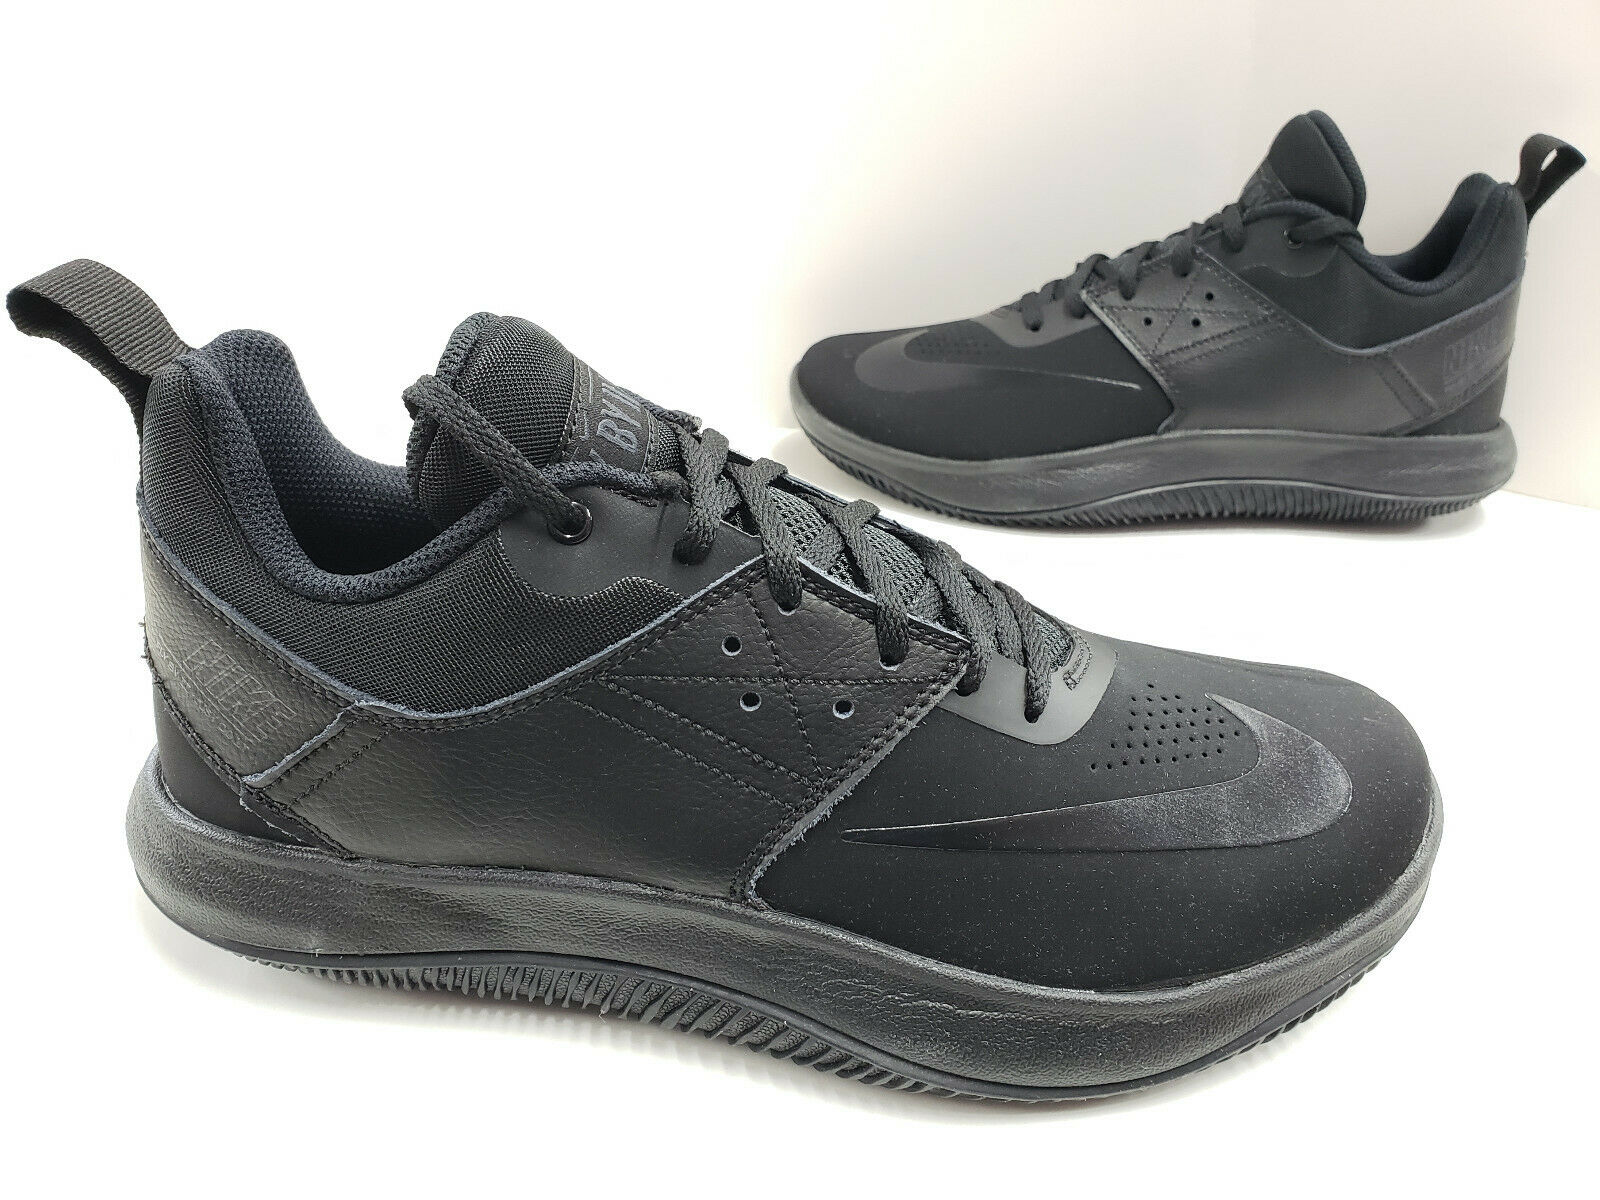 Nike Basketball Fly.By Fly By Low II 2 NBK Black Black Anthracite AV2086 001